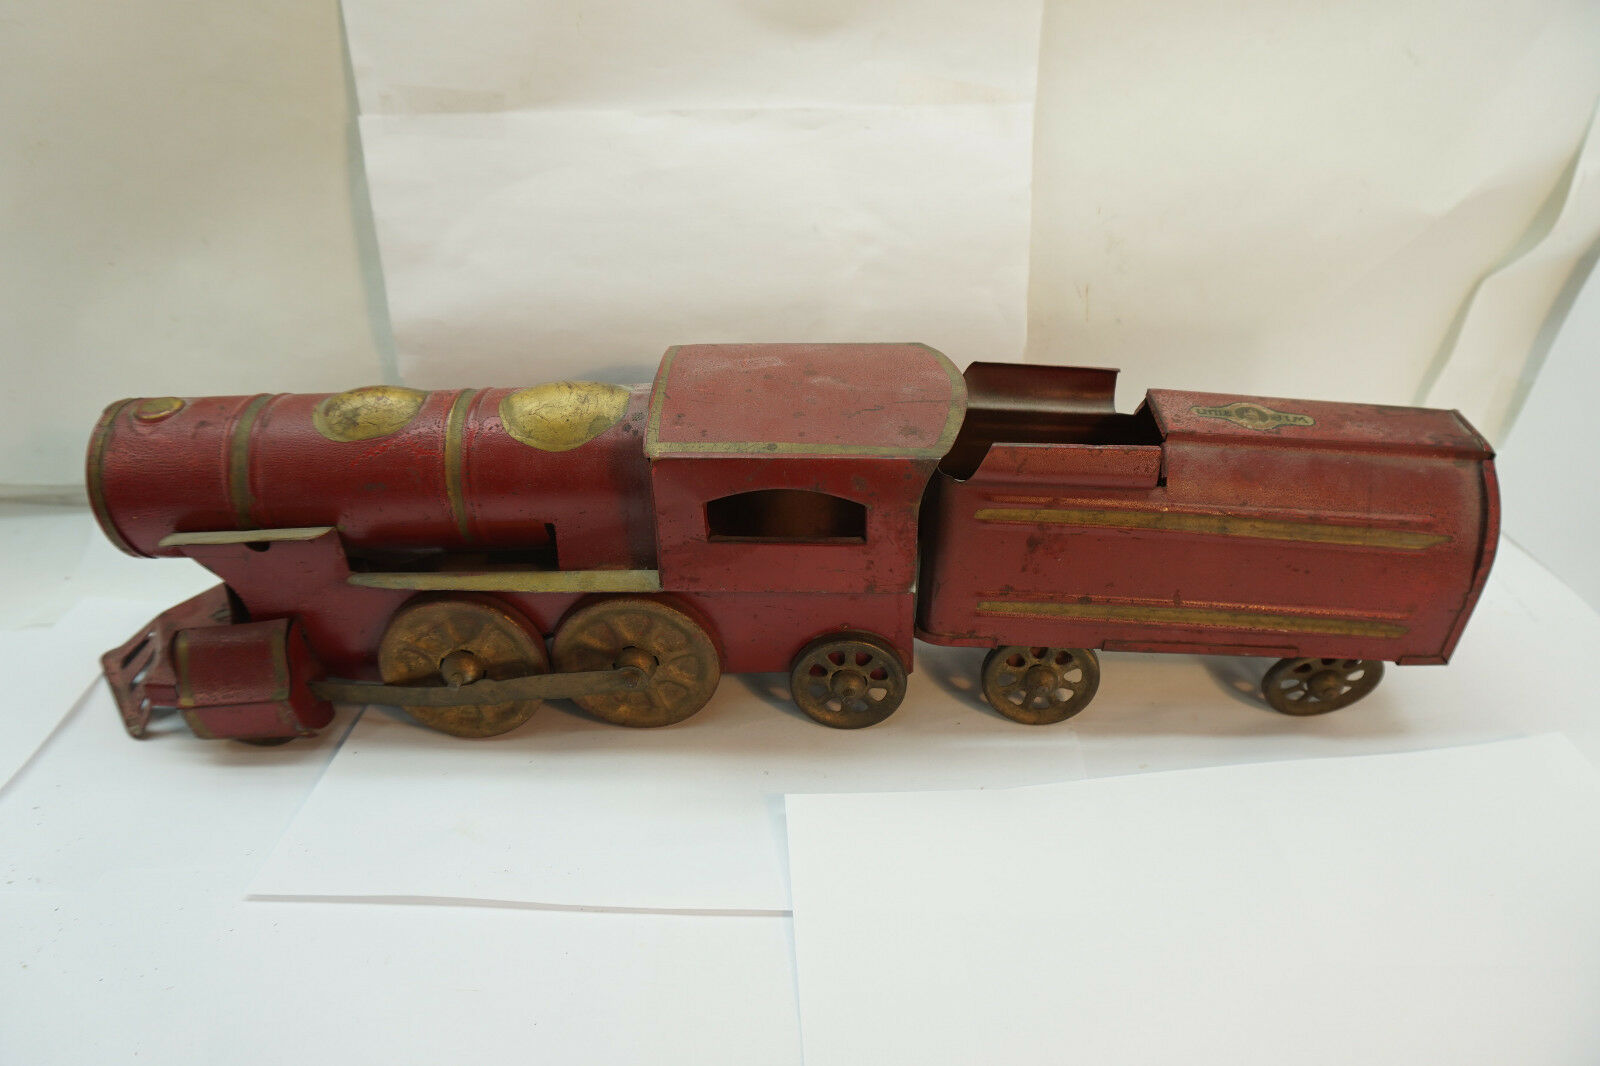 Antique Acier Pressé Jouet Train Little Jim Jc 1930s Penney Steelcraft 1930s Jc Métal 2 0a23de